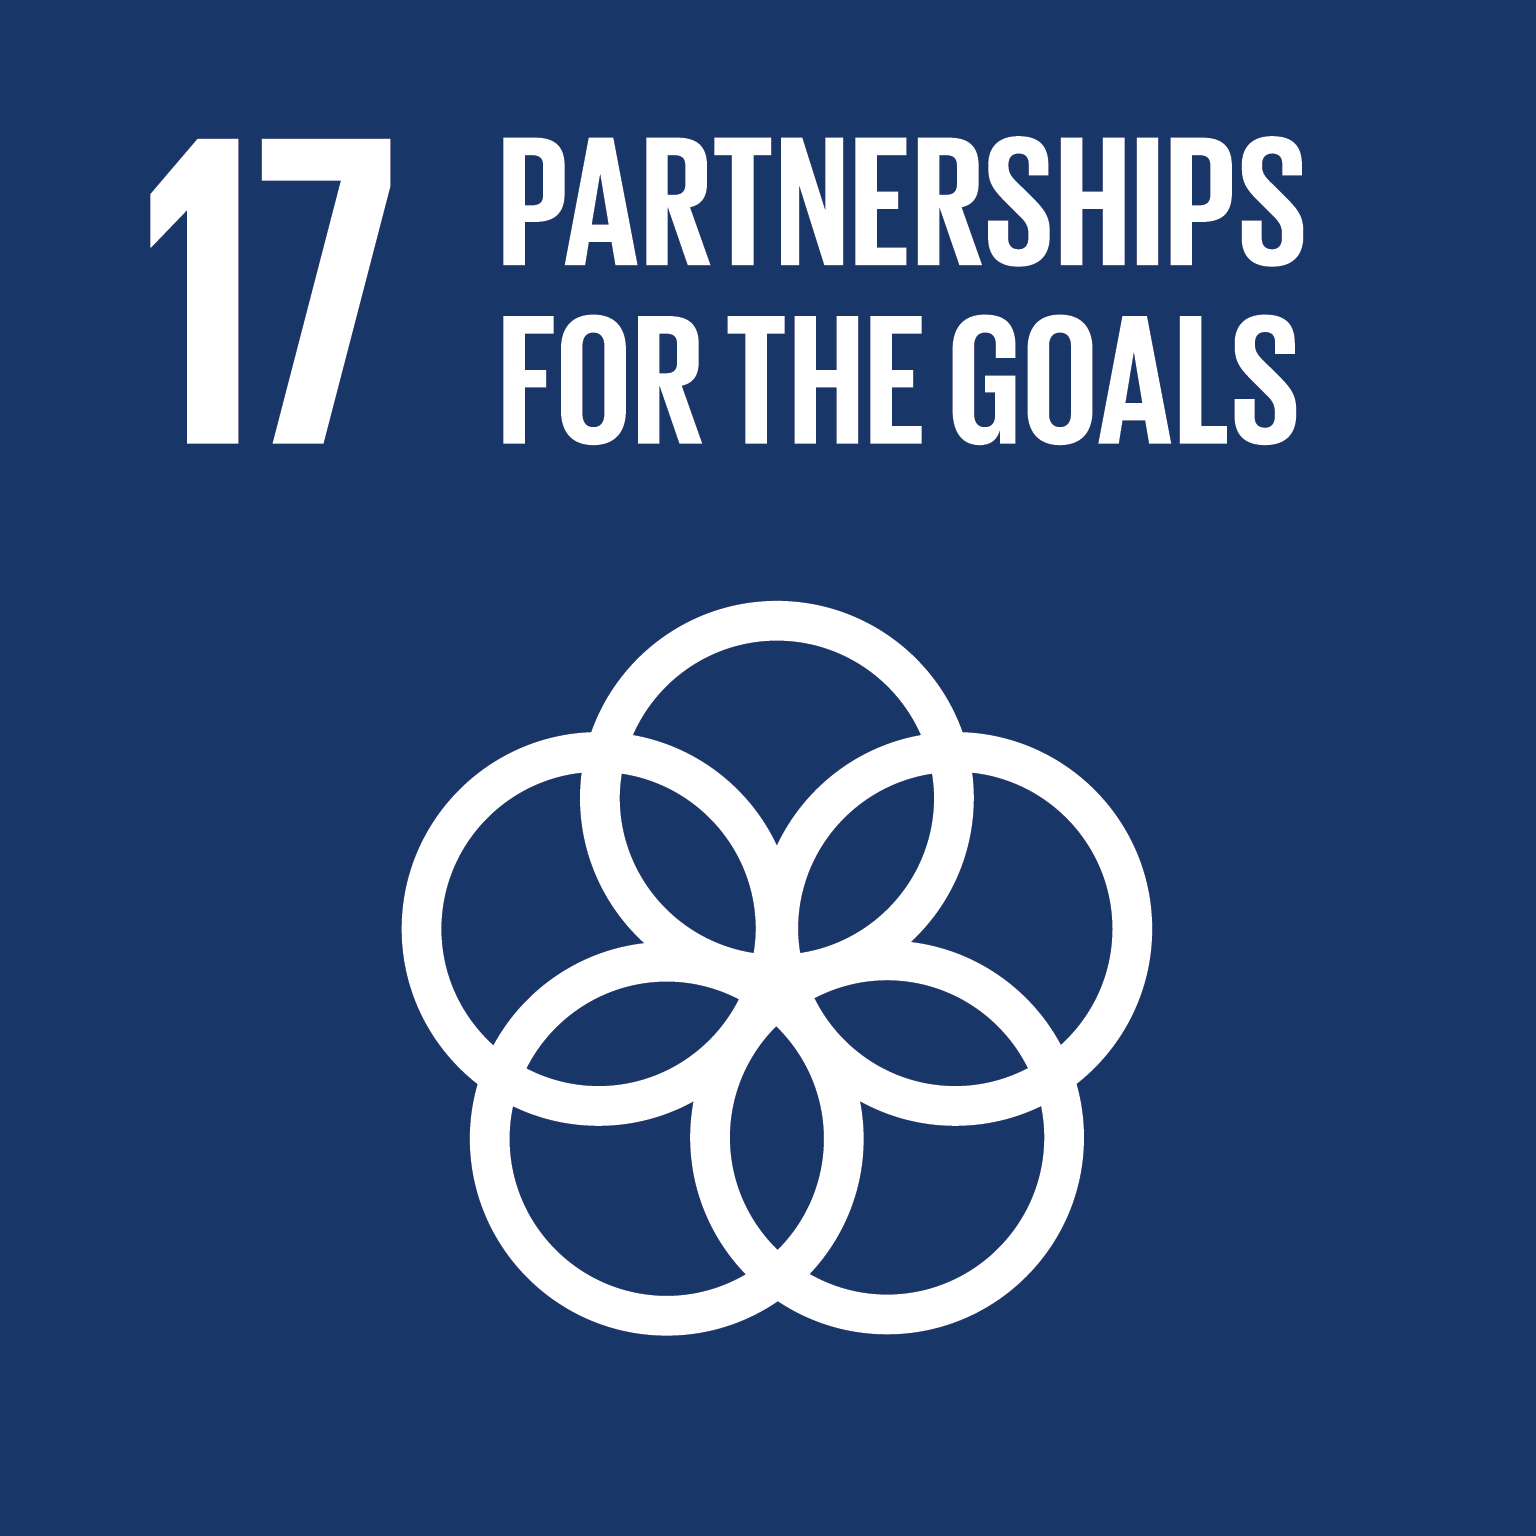 Sustainable Development Goal SDG 17 Partnership